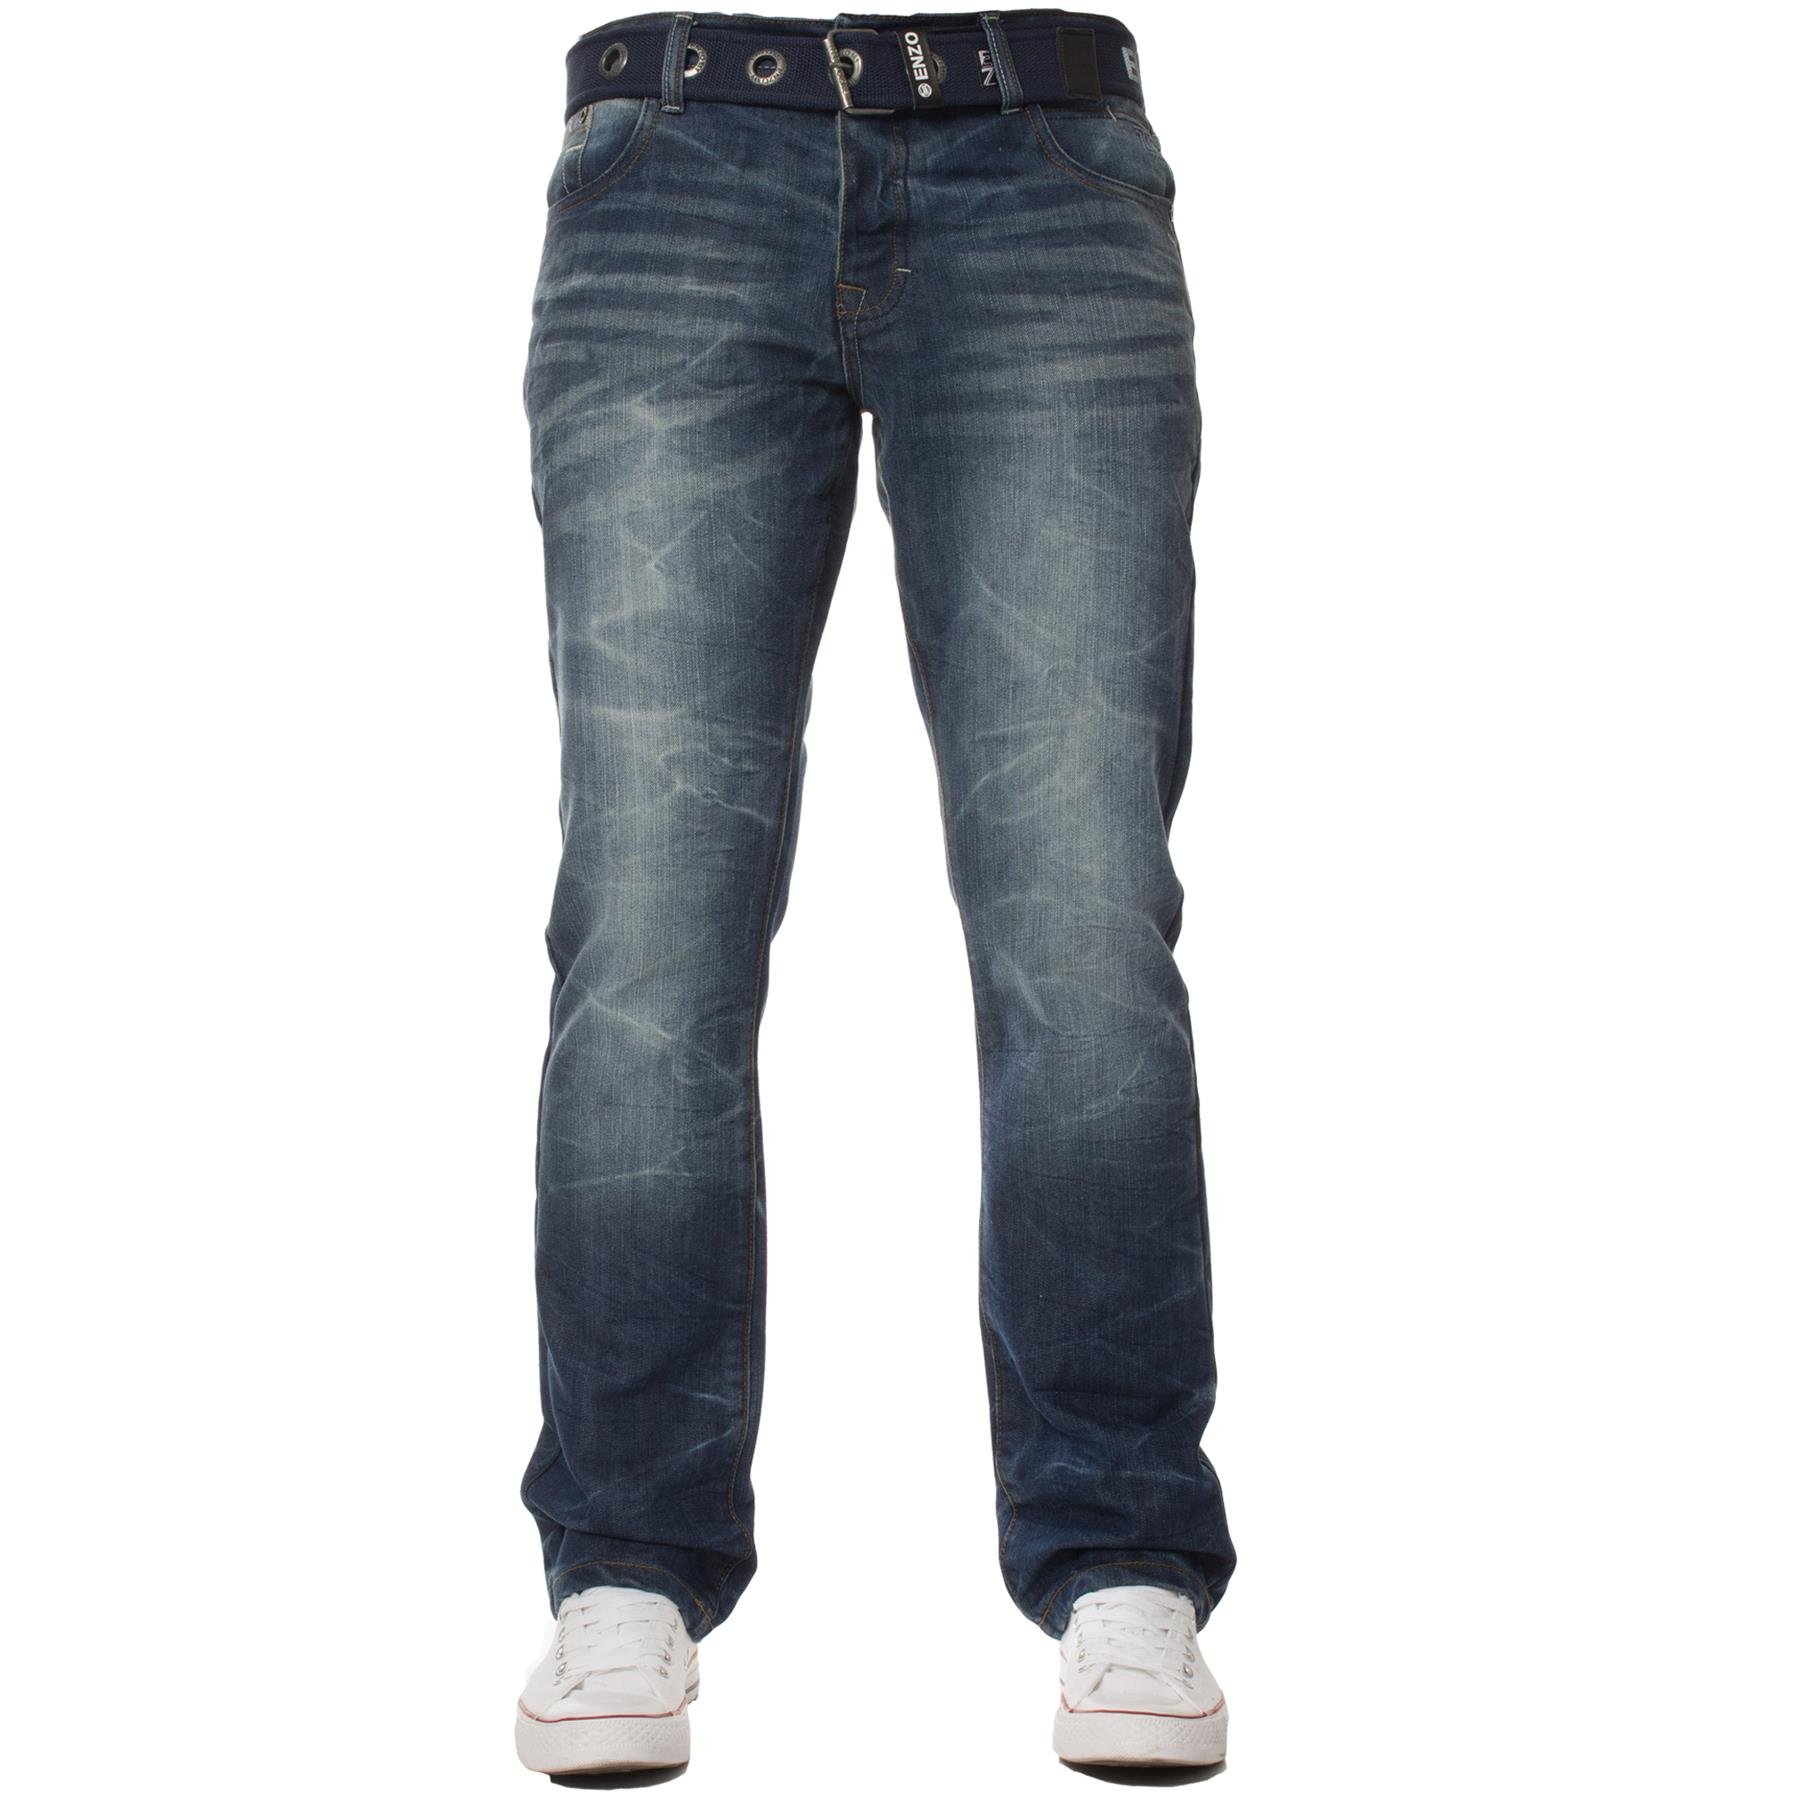 Enzo-Mens-Jeans-Big-Tall-Leg-King-Size-Denim-Pants-Chino-Trousers-Waist-44-034-60-034 miniature 71